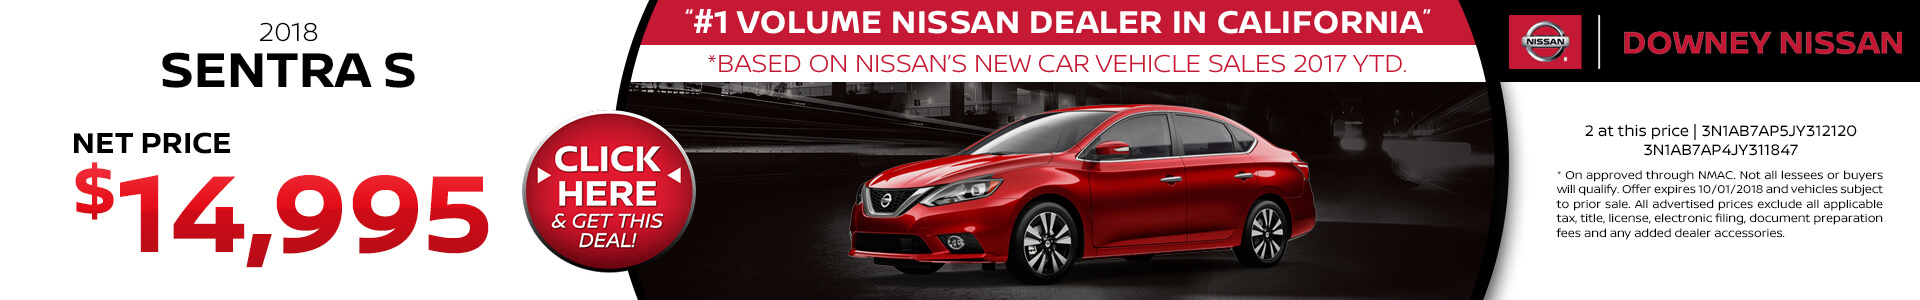 2018 Nissan Sentra - Purchase for $14,995